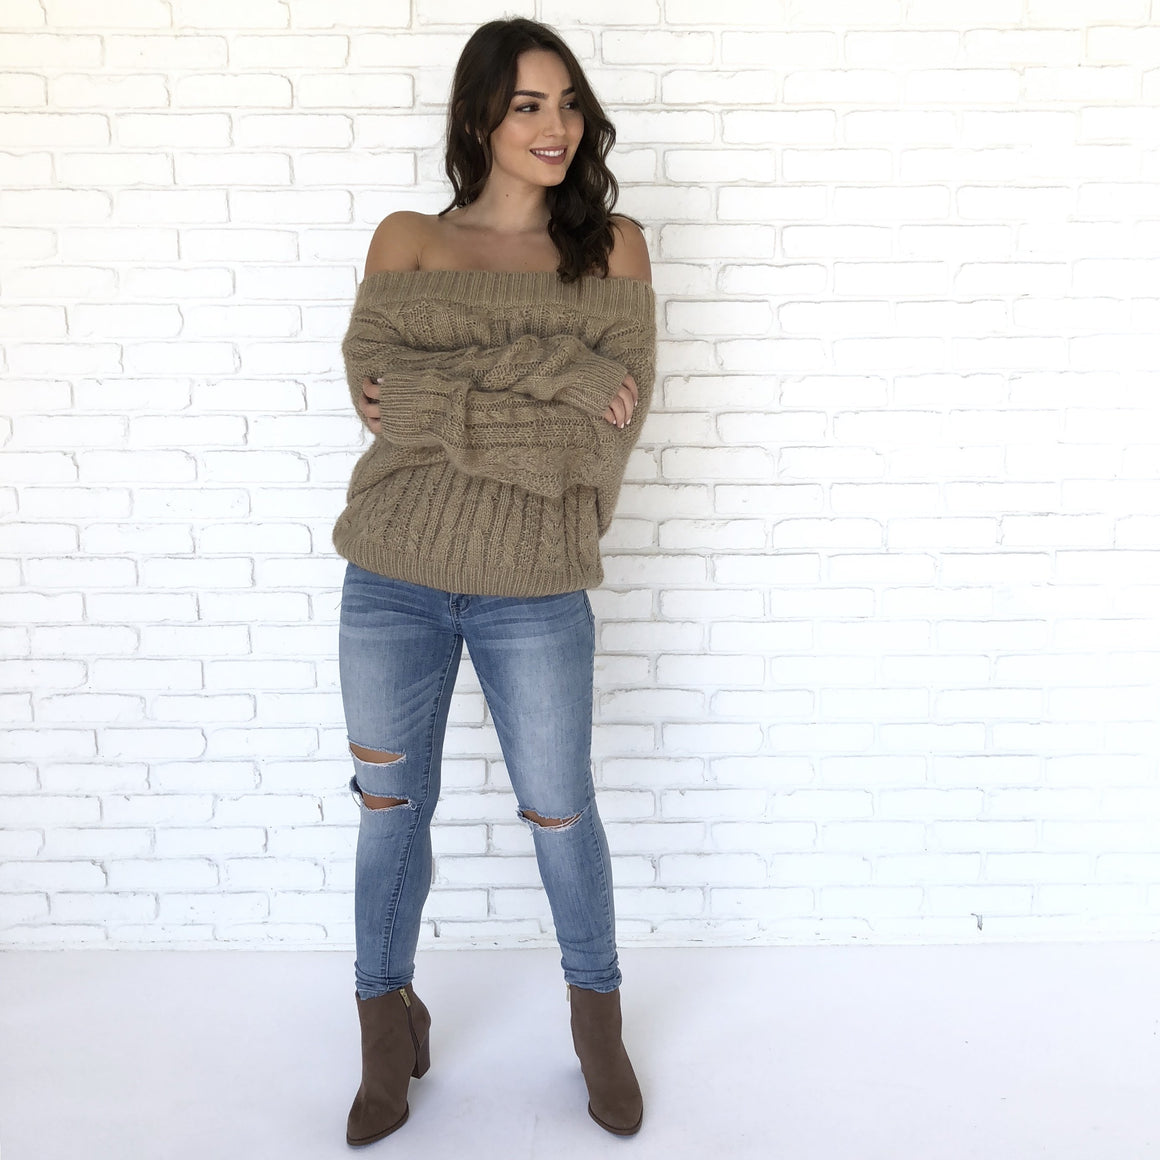 Fireplace Snuggle Off Shoulder Knit Sweater in Mocha - Dainty Hooligan